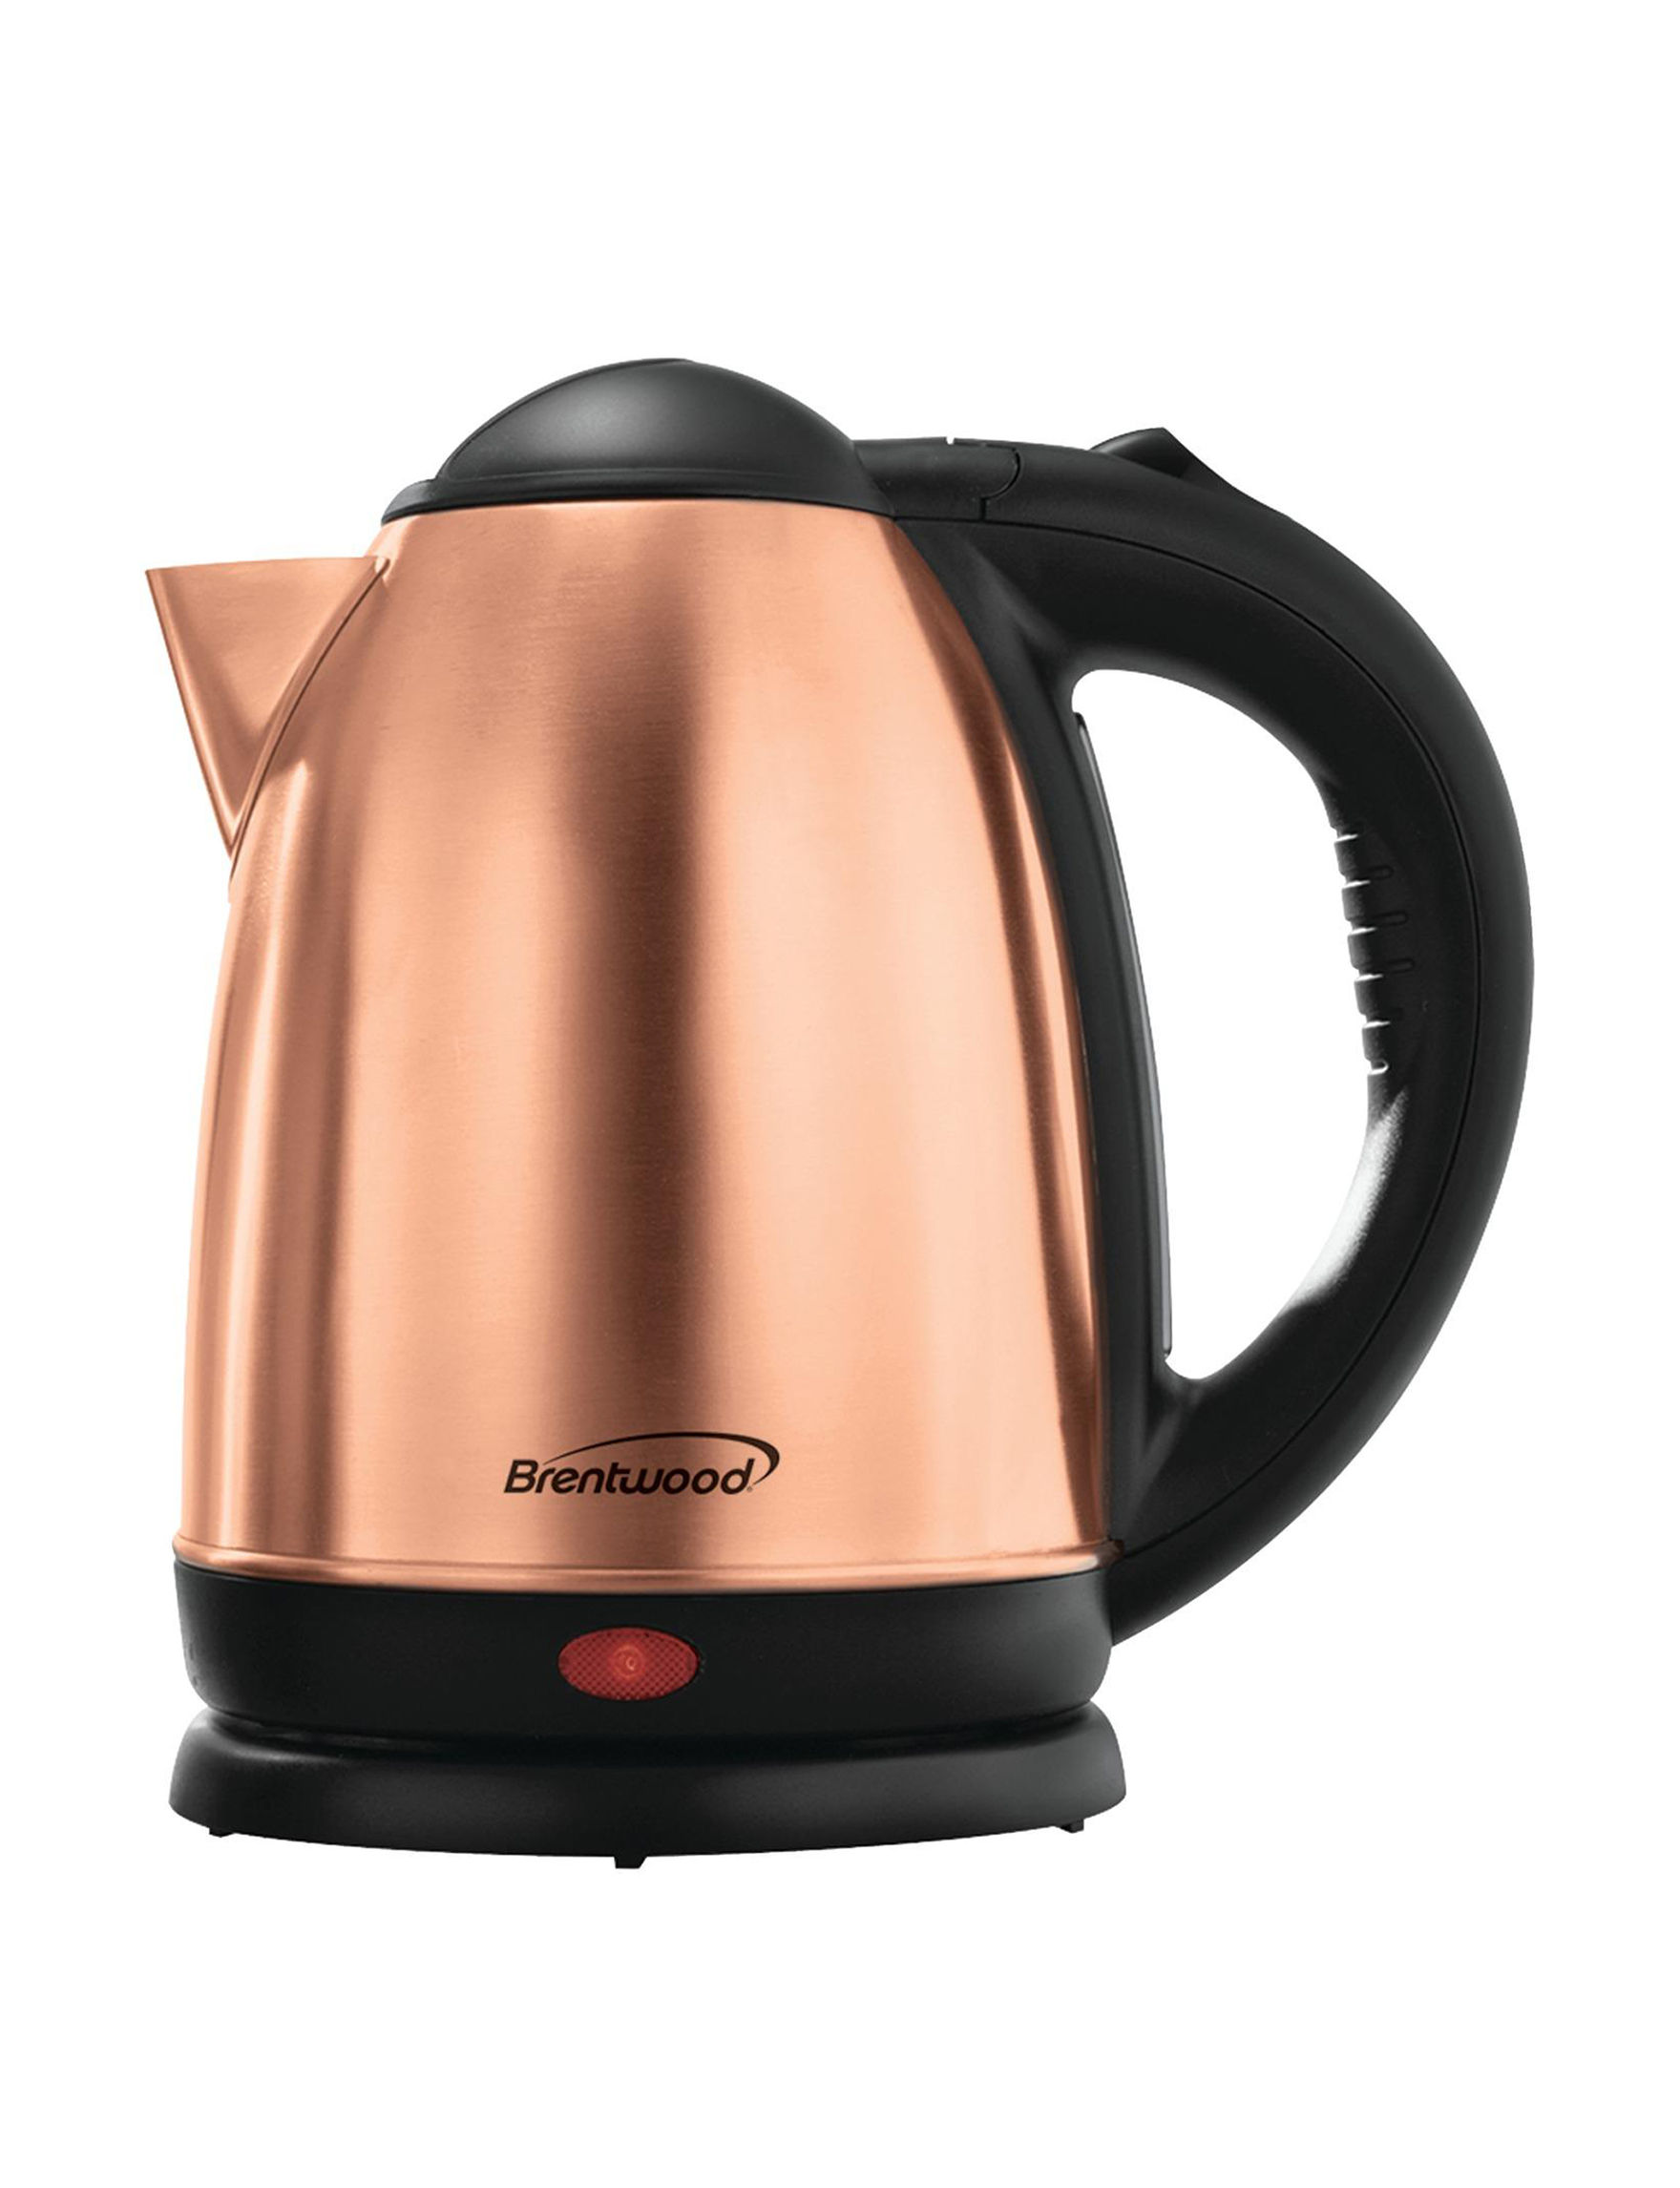 Brentwood Rose Gold Coffee, Espresso & Tea Makers Kitchen Appliances